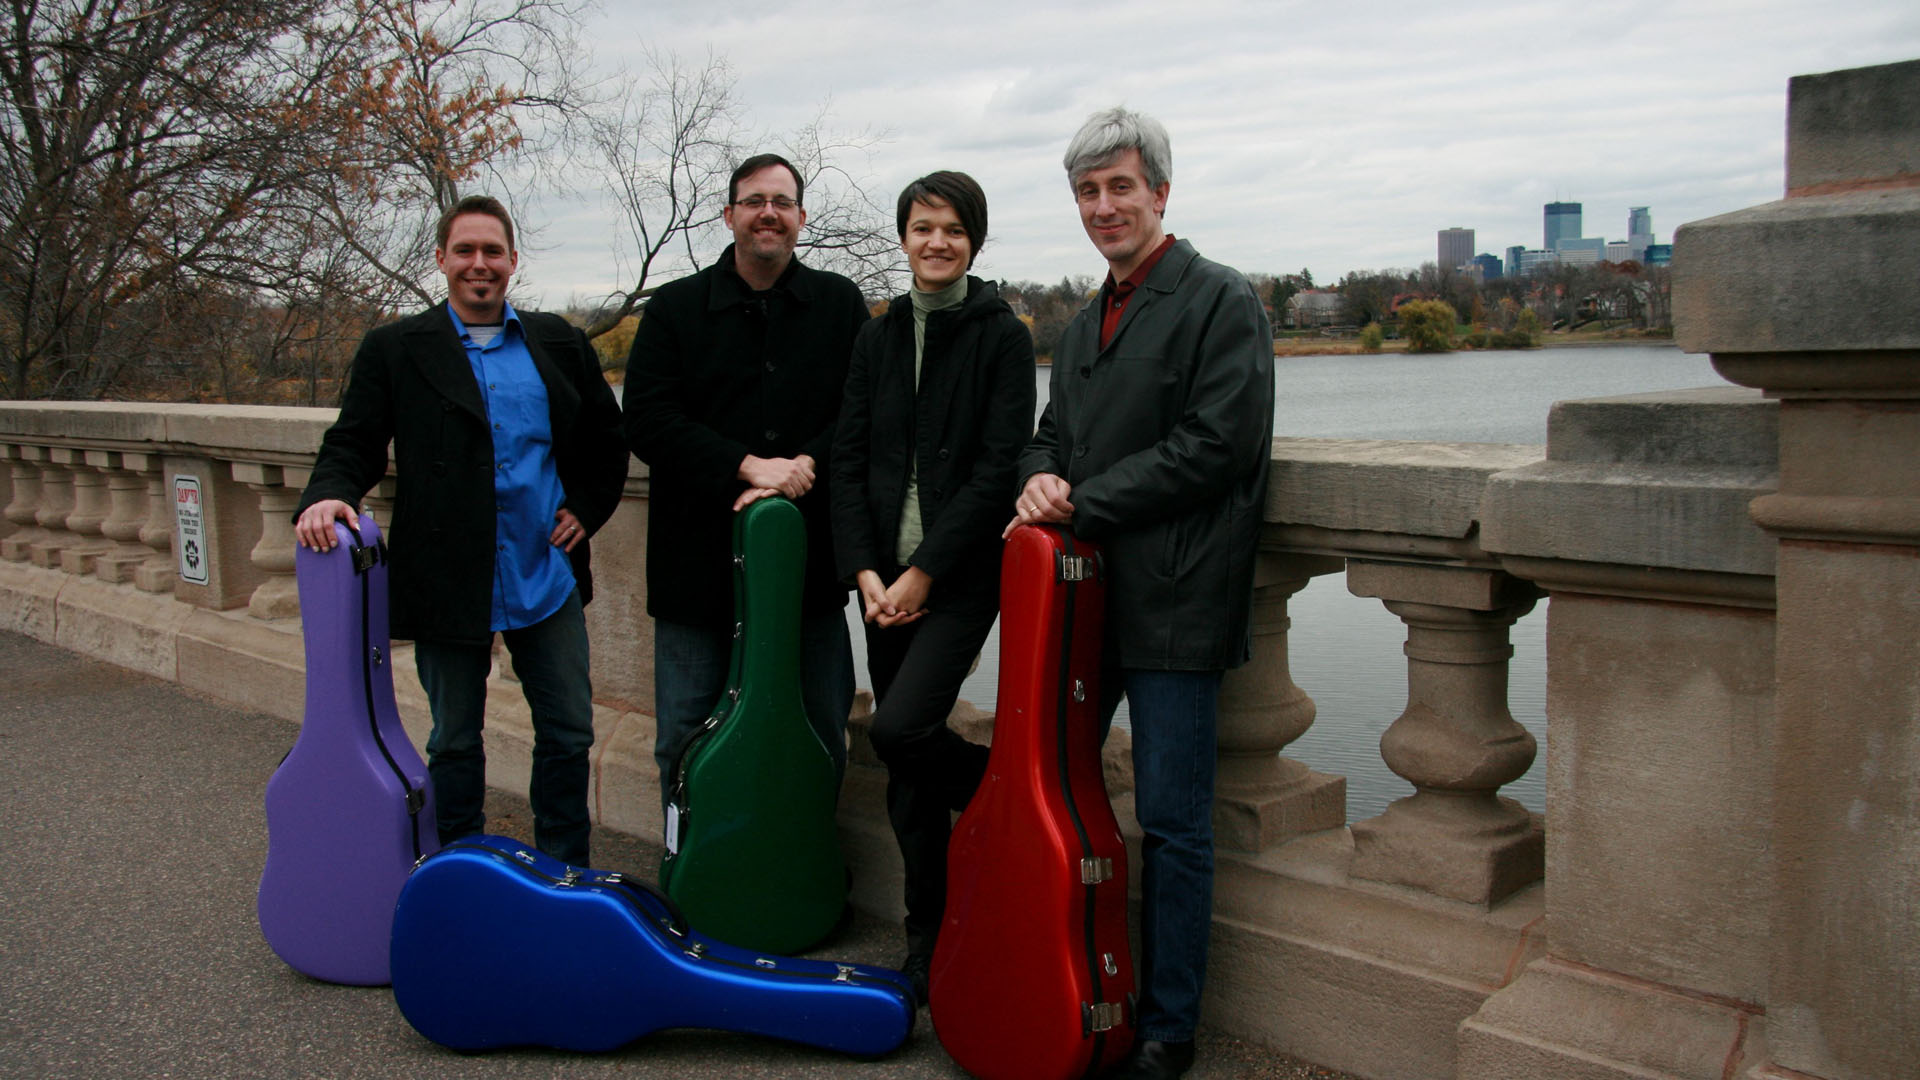 FASO featuring the  Minneapolis Guitar Quartet